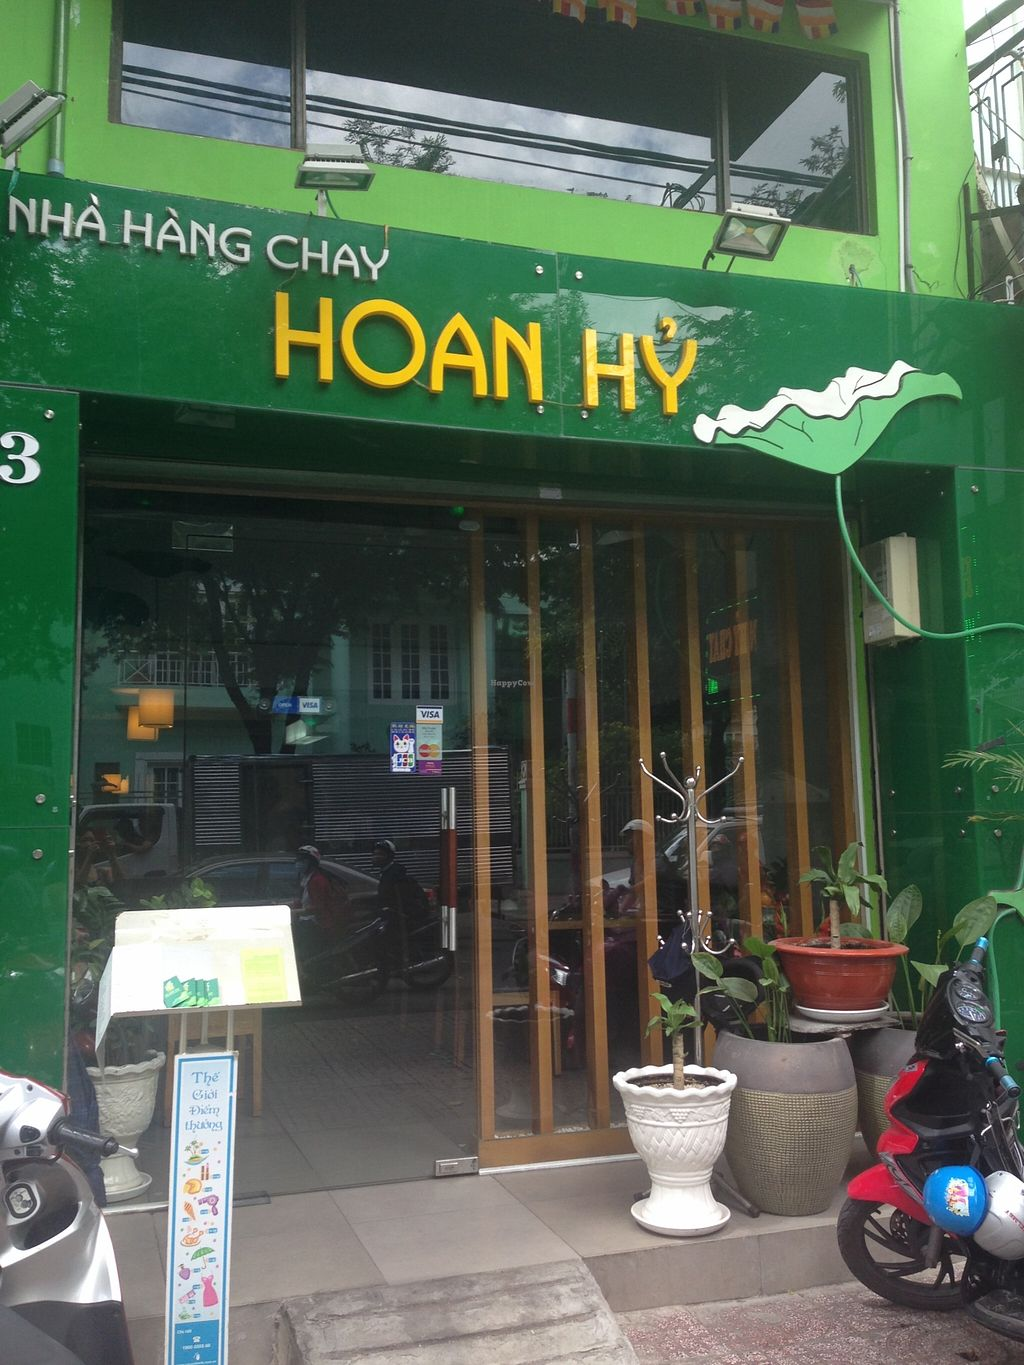 """Photo of Hoan Hy 2  by <a href=""""/members/profile/Stevie"""">Stevie</a> <br/>4 <br/> September 26, 2015  - <a href='/contact/abuse/image/55700/119255'>Report</a>"""